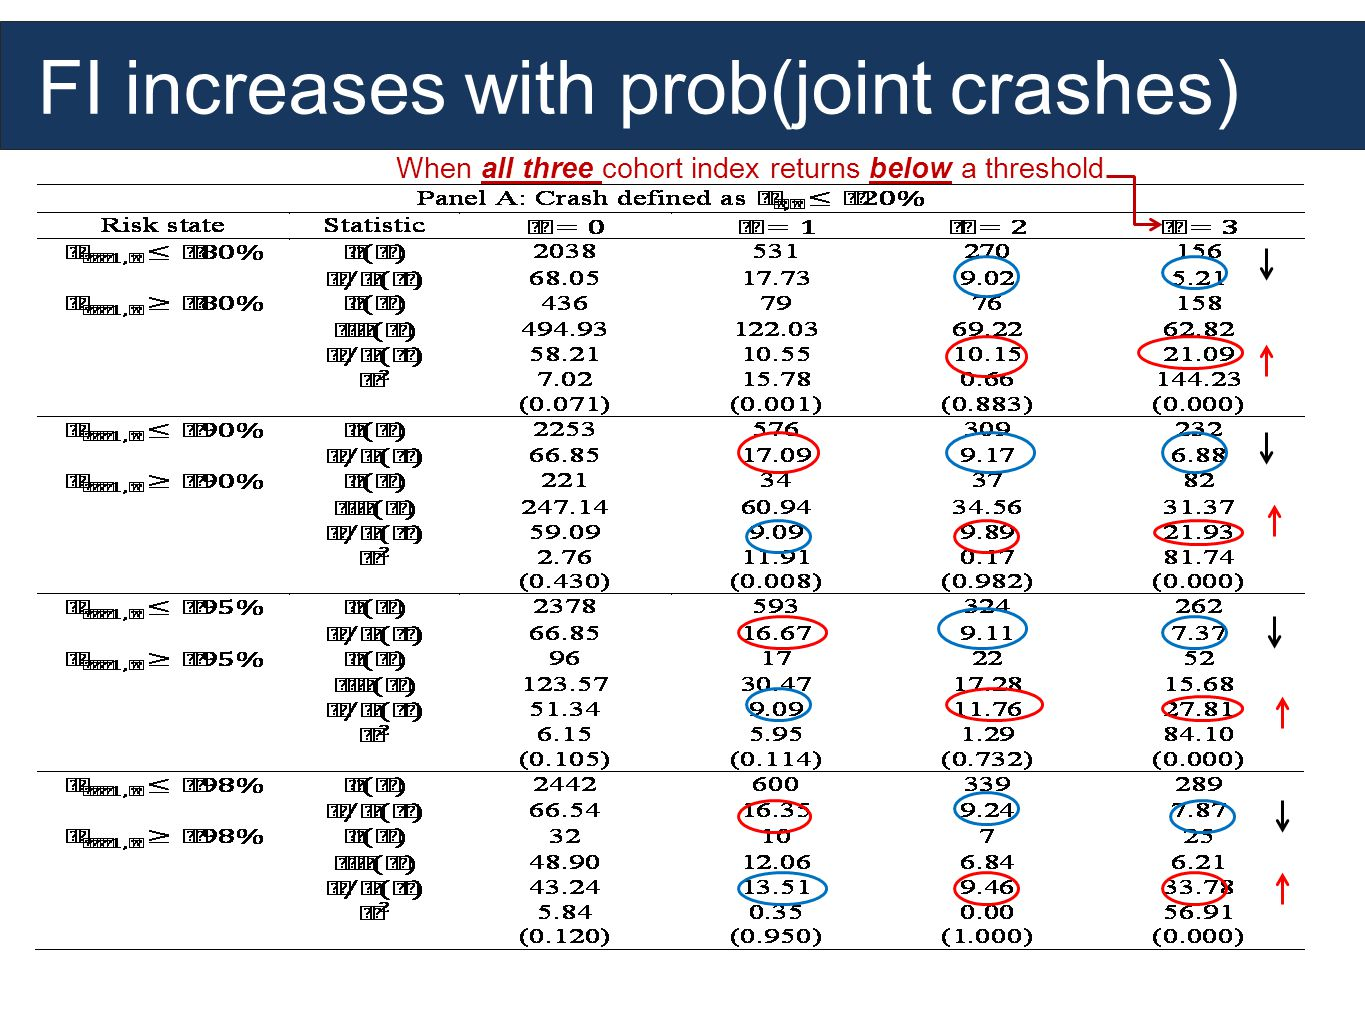 FI increases with prob(joint crashes) When all three cohort index returns below a threshold